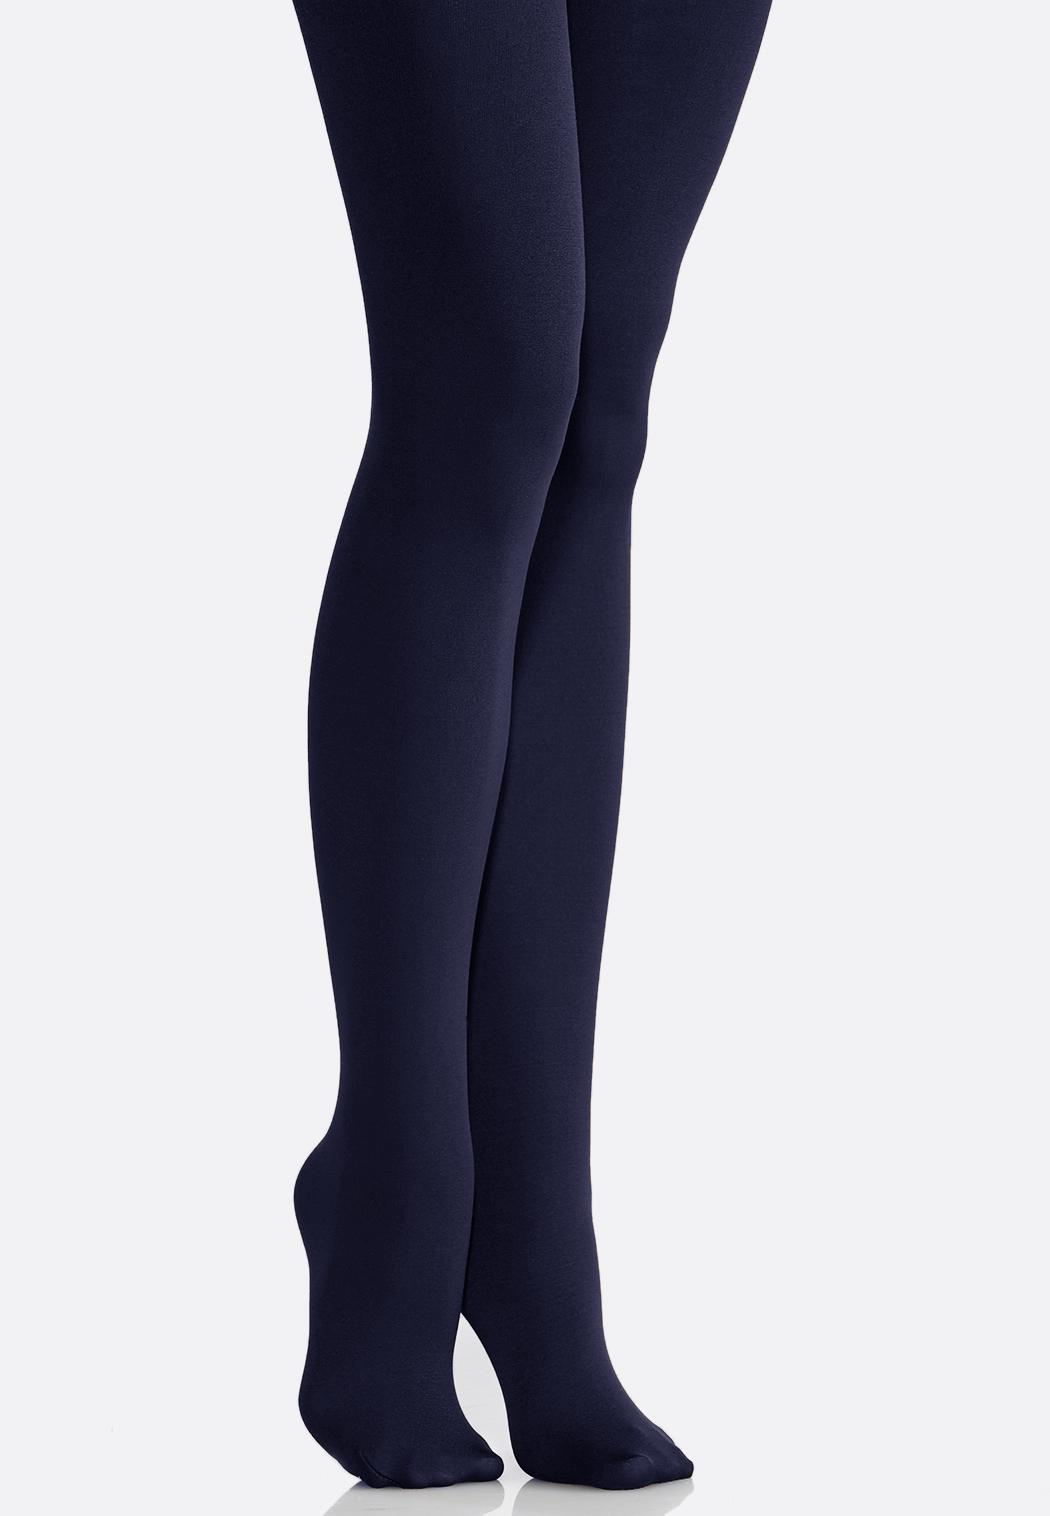 Plus Size Fleece Lined Tights